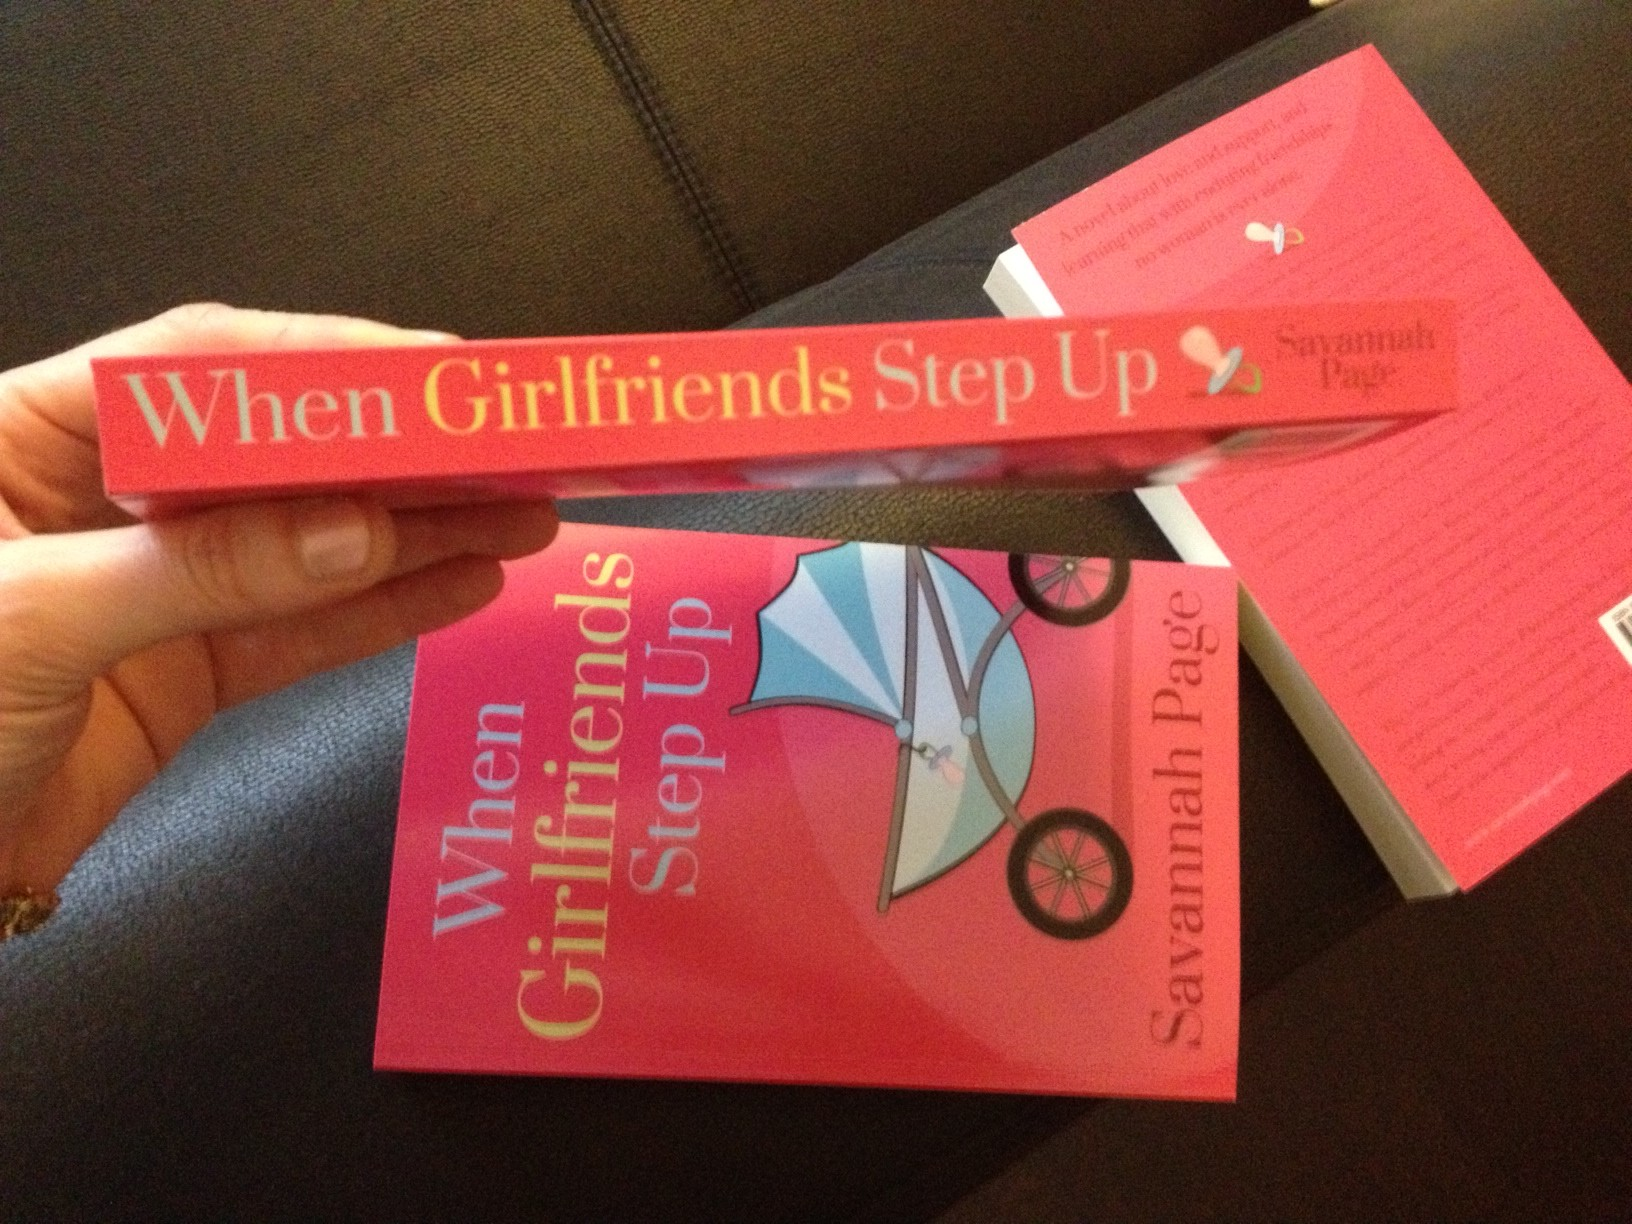 When Girlfriends Step Up in Paperback - Savannah Page